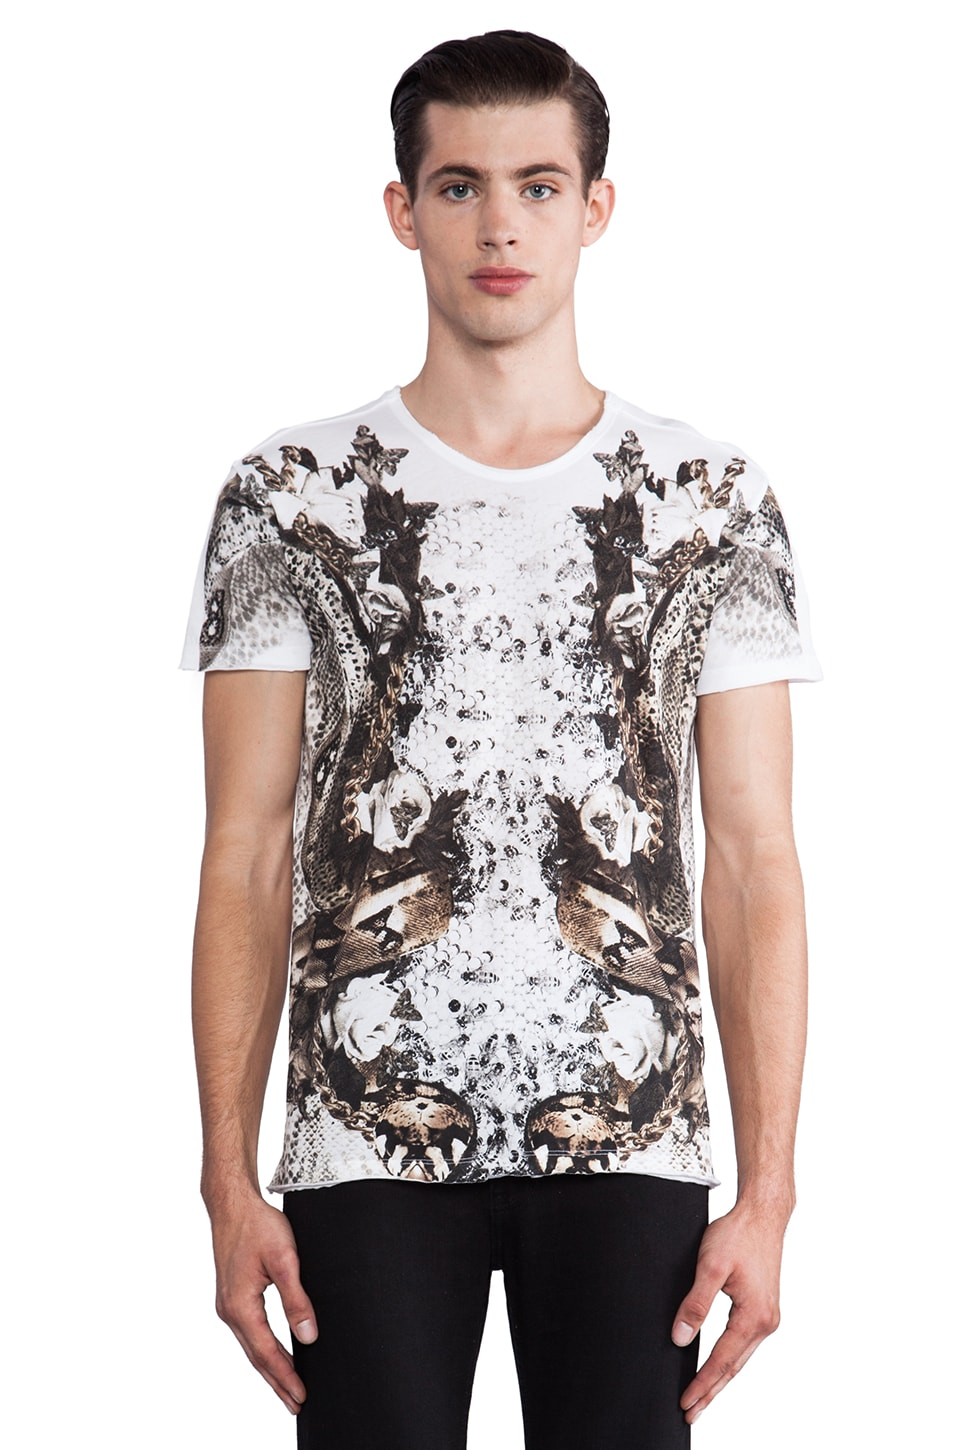 Sons of Heroes Double Snake Graphic Tee in White